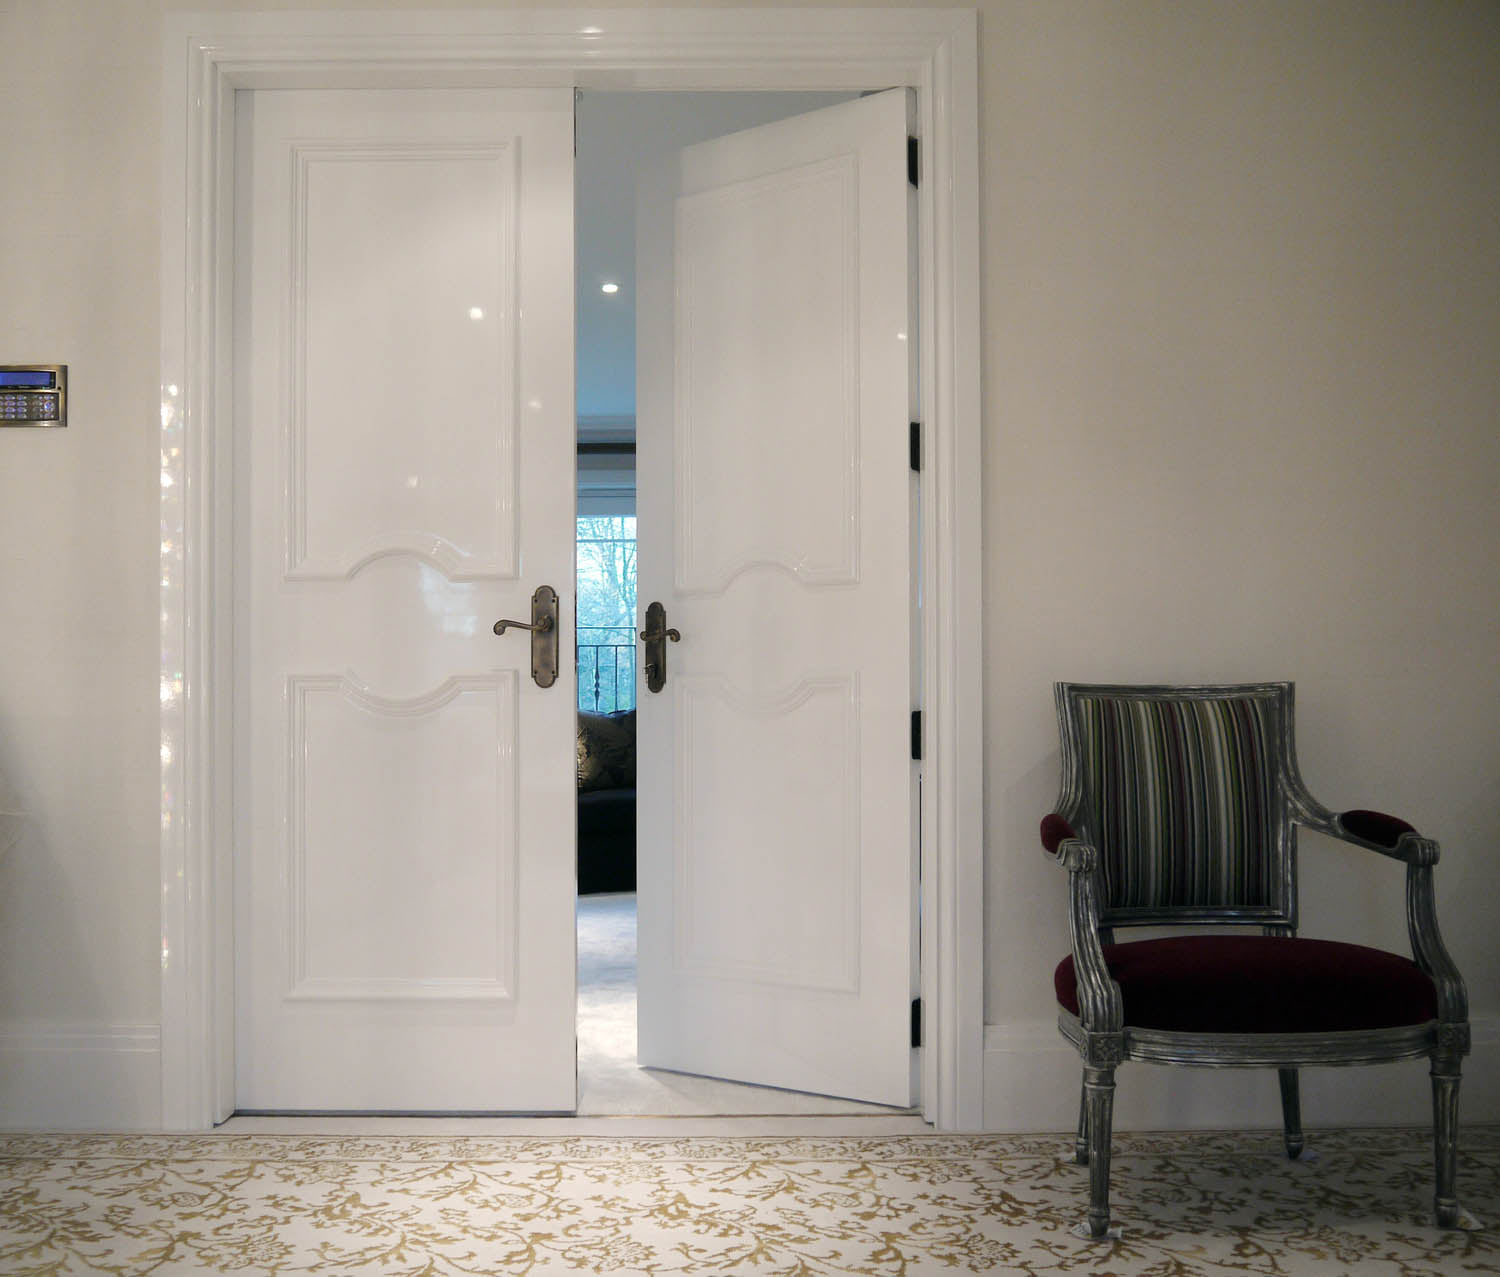 White double doors slightly open, looking into a living room